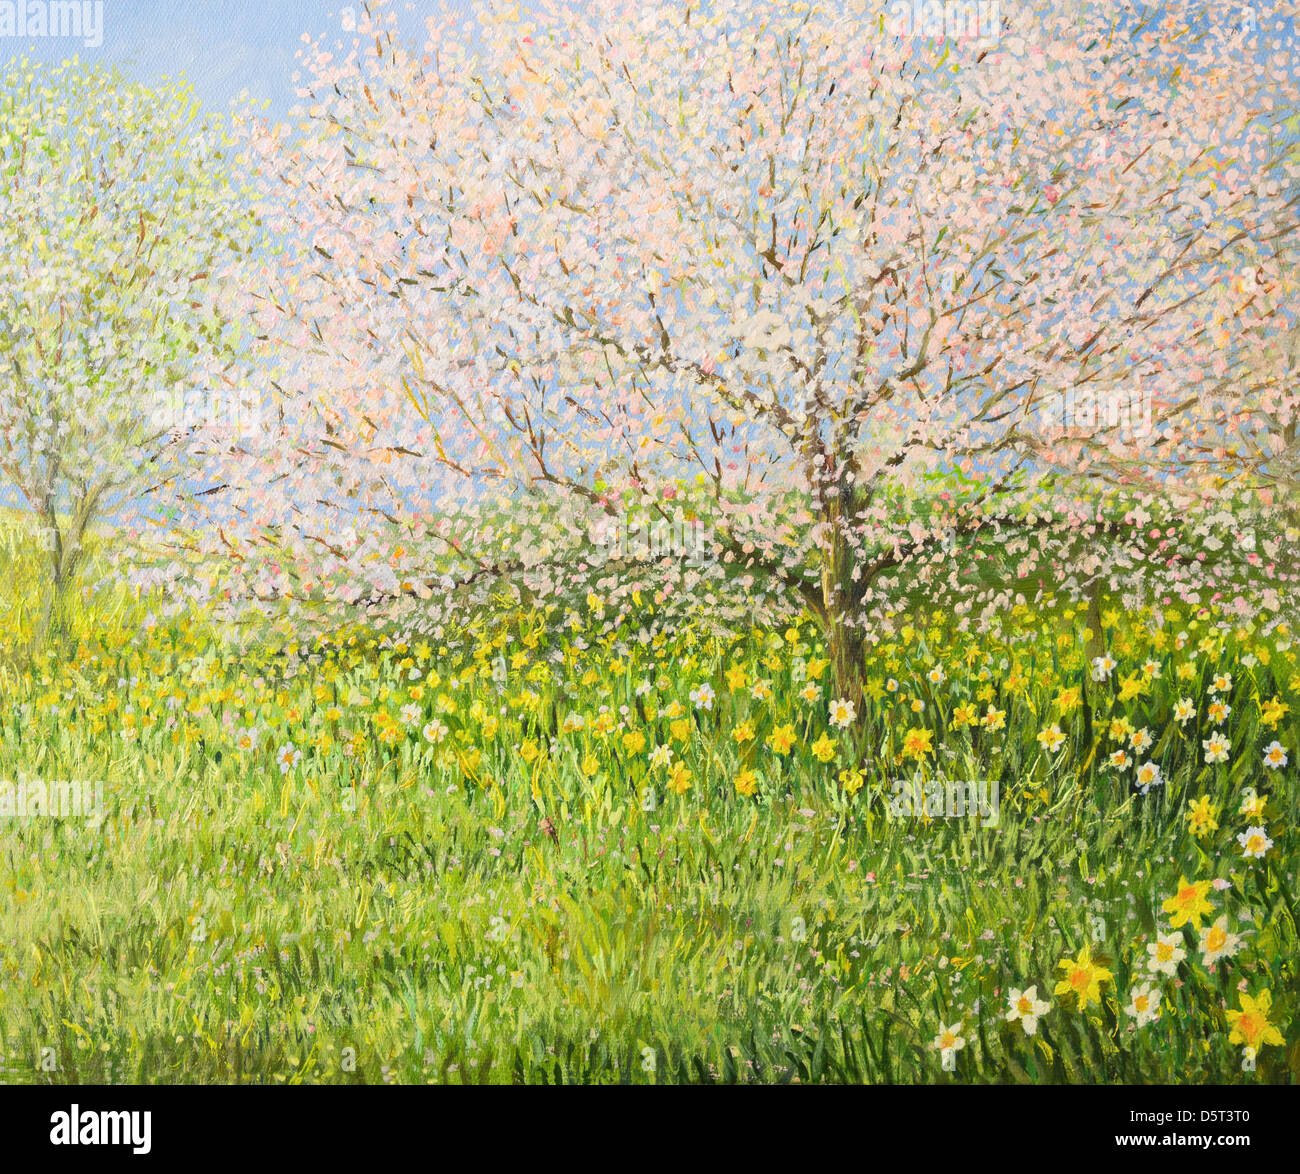 An oil painting on canvas of a springtime natural landscape with blooming trees and colorful meadow full of daffodils. - Stock Image